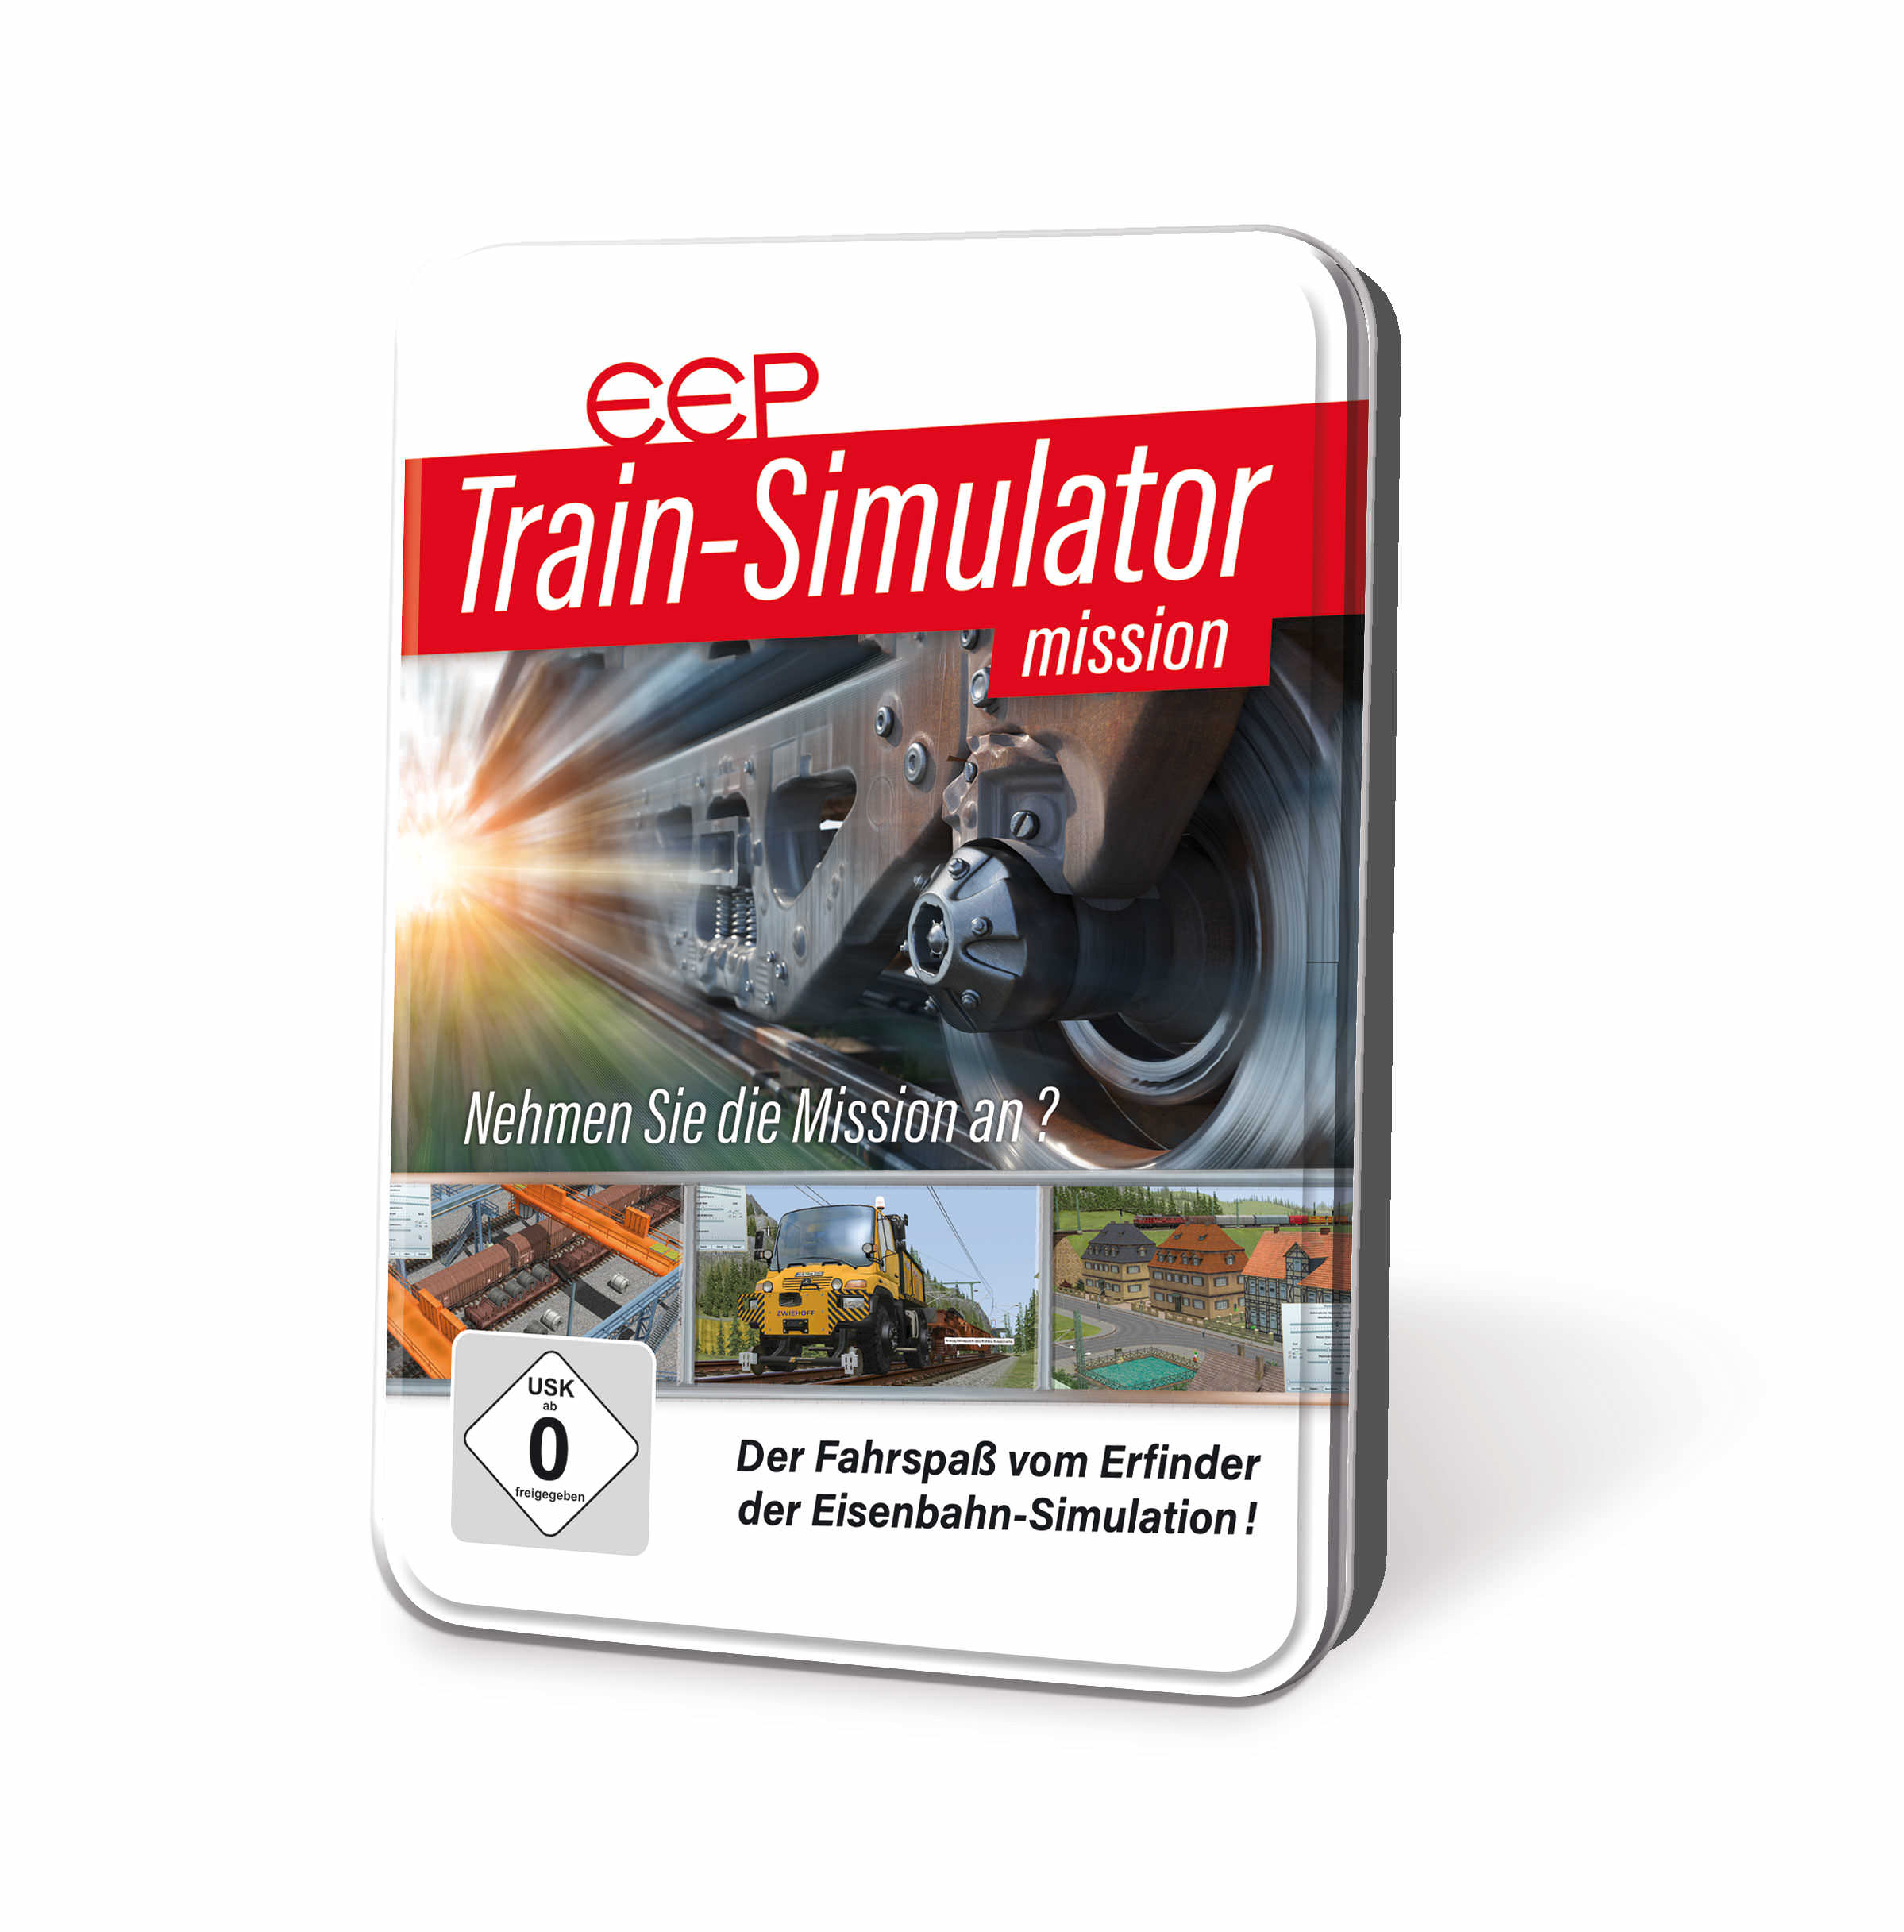 EEP Train Simulator mission 2017